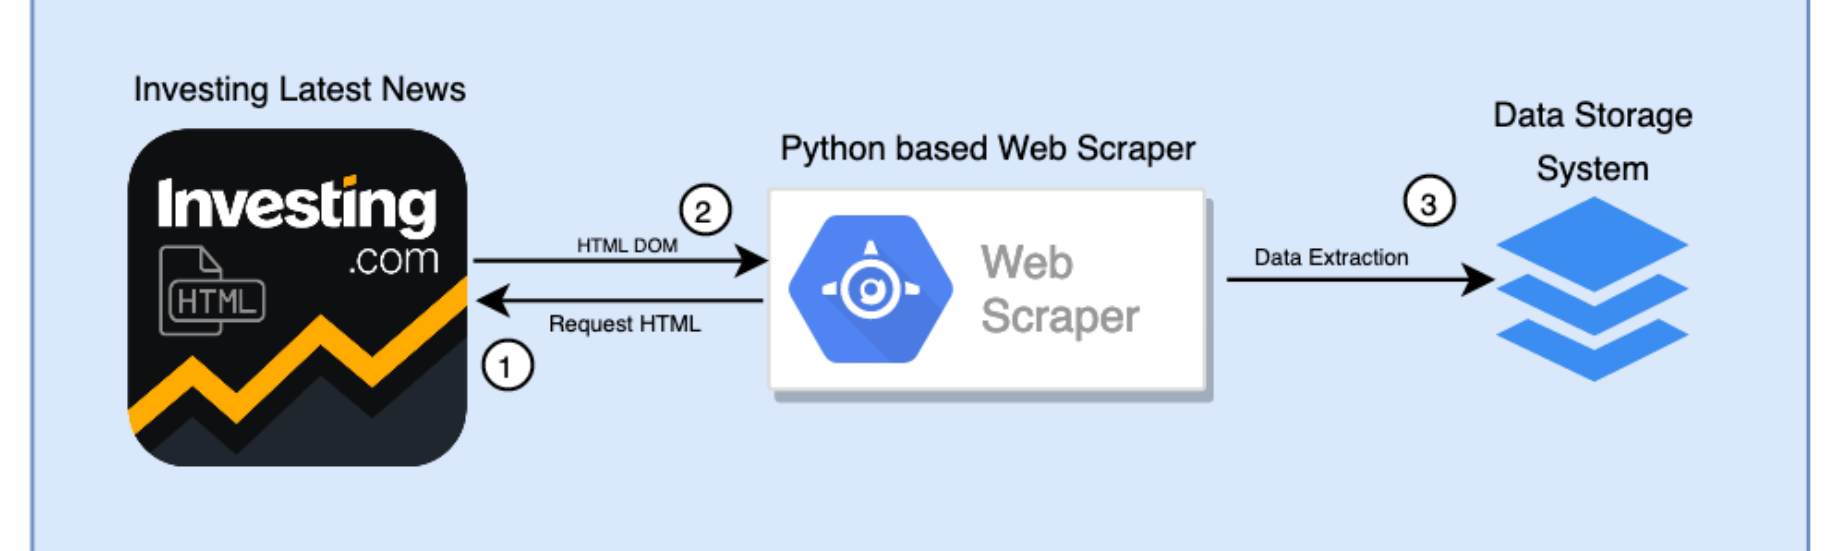 Guidelines for Building an Efficient Web Scraper in Python